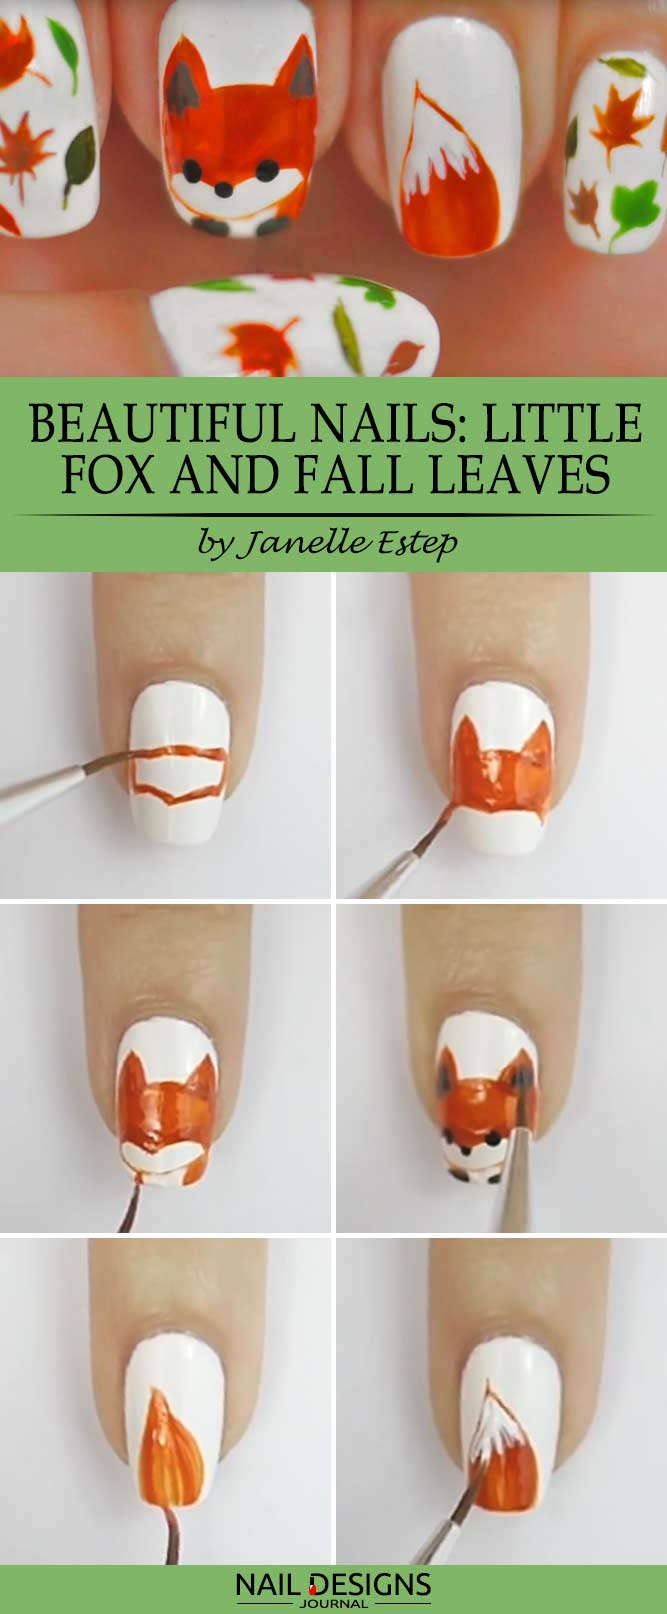 3 Foxy Nails Ideas To Make Everyone Crazy | NailDesignsJournal.com